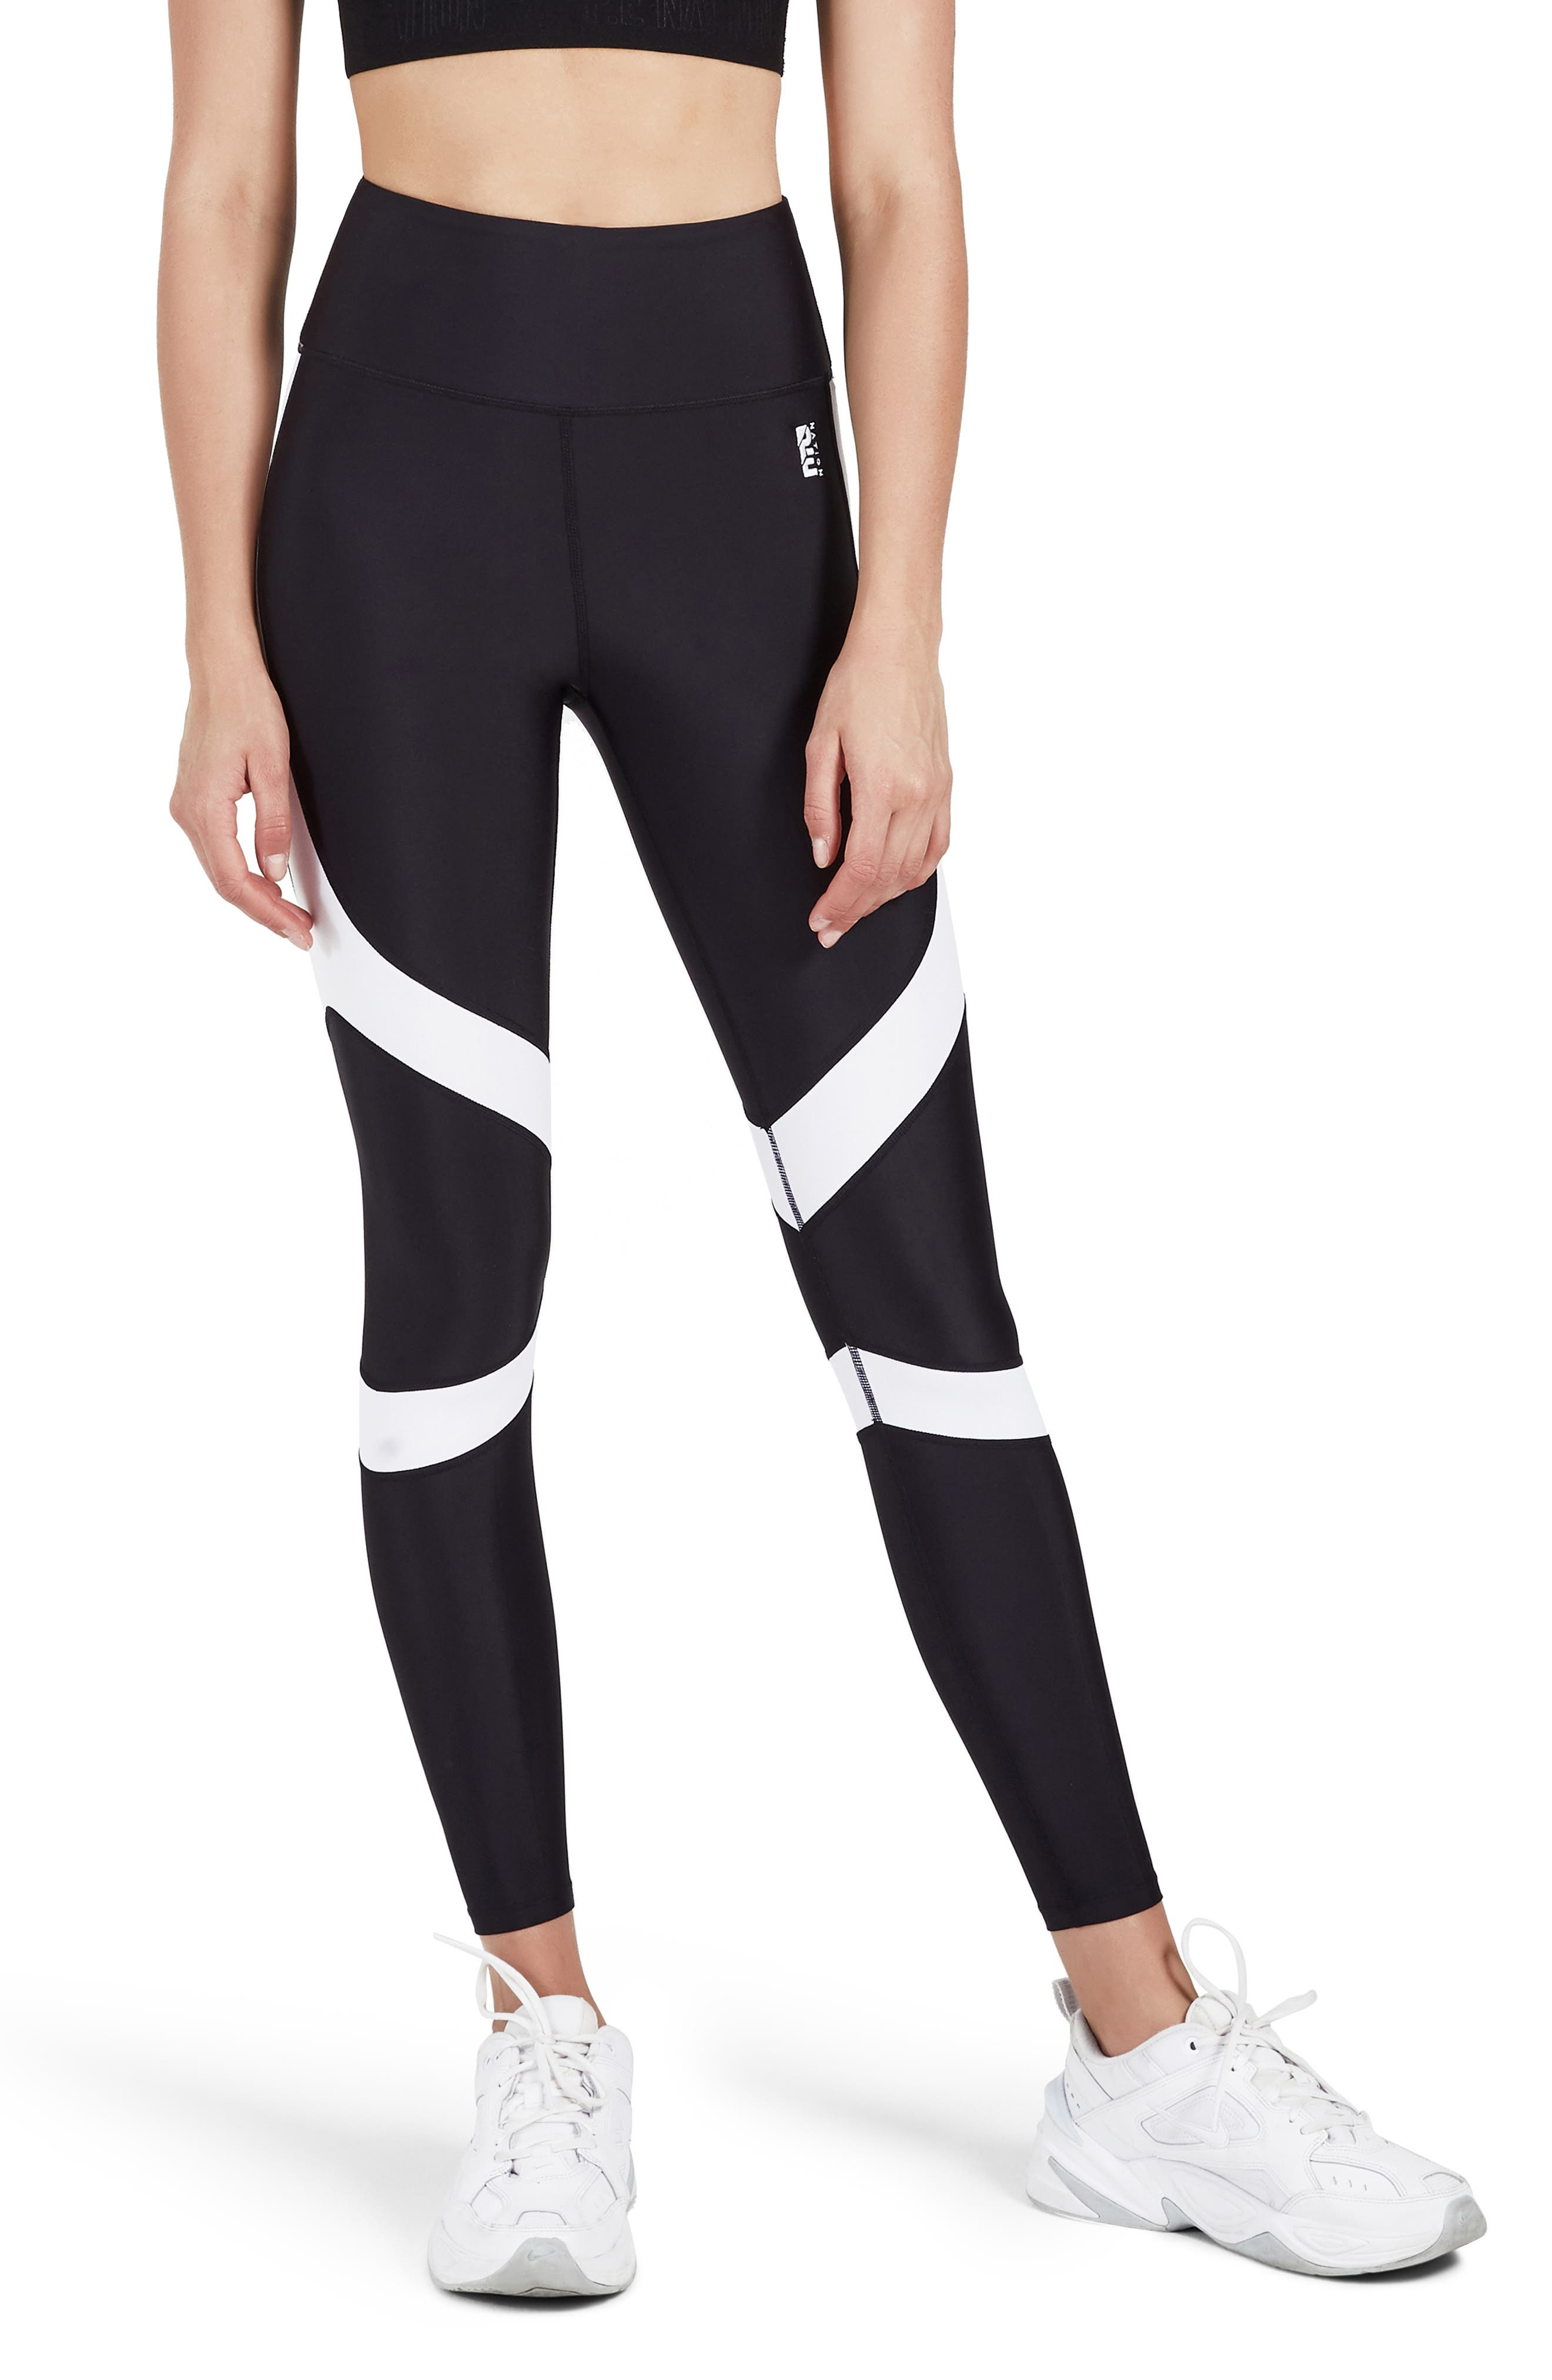 790494aa0cc016 Women's P.E Nation Workout Clothes & Activewear | Nordstrom